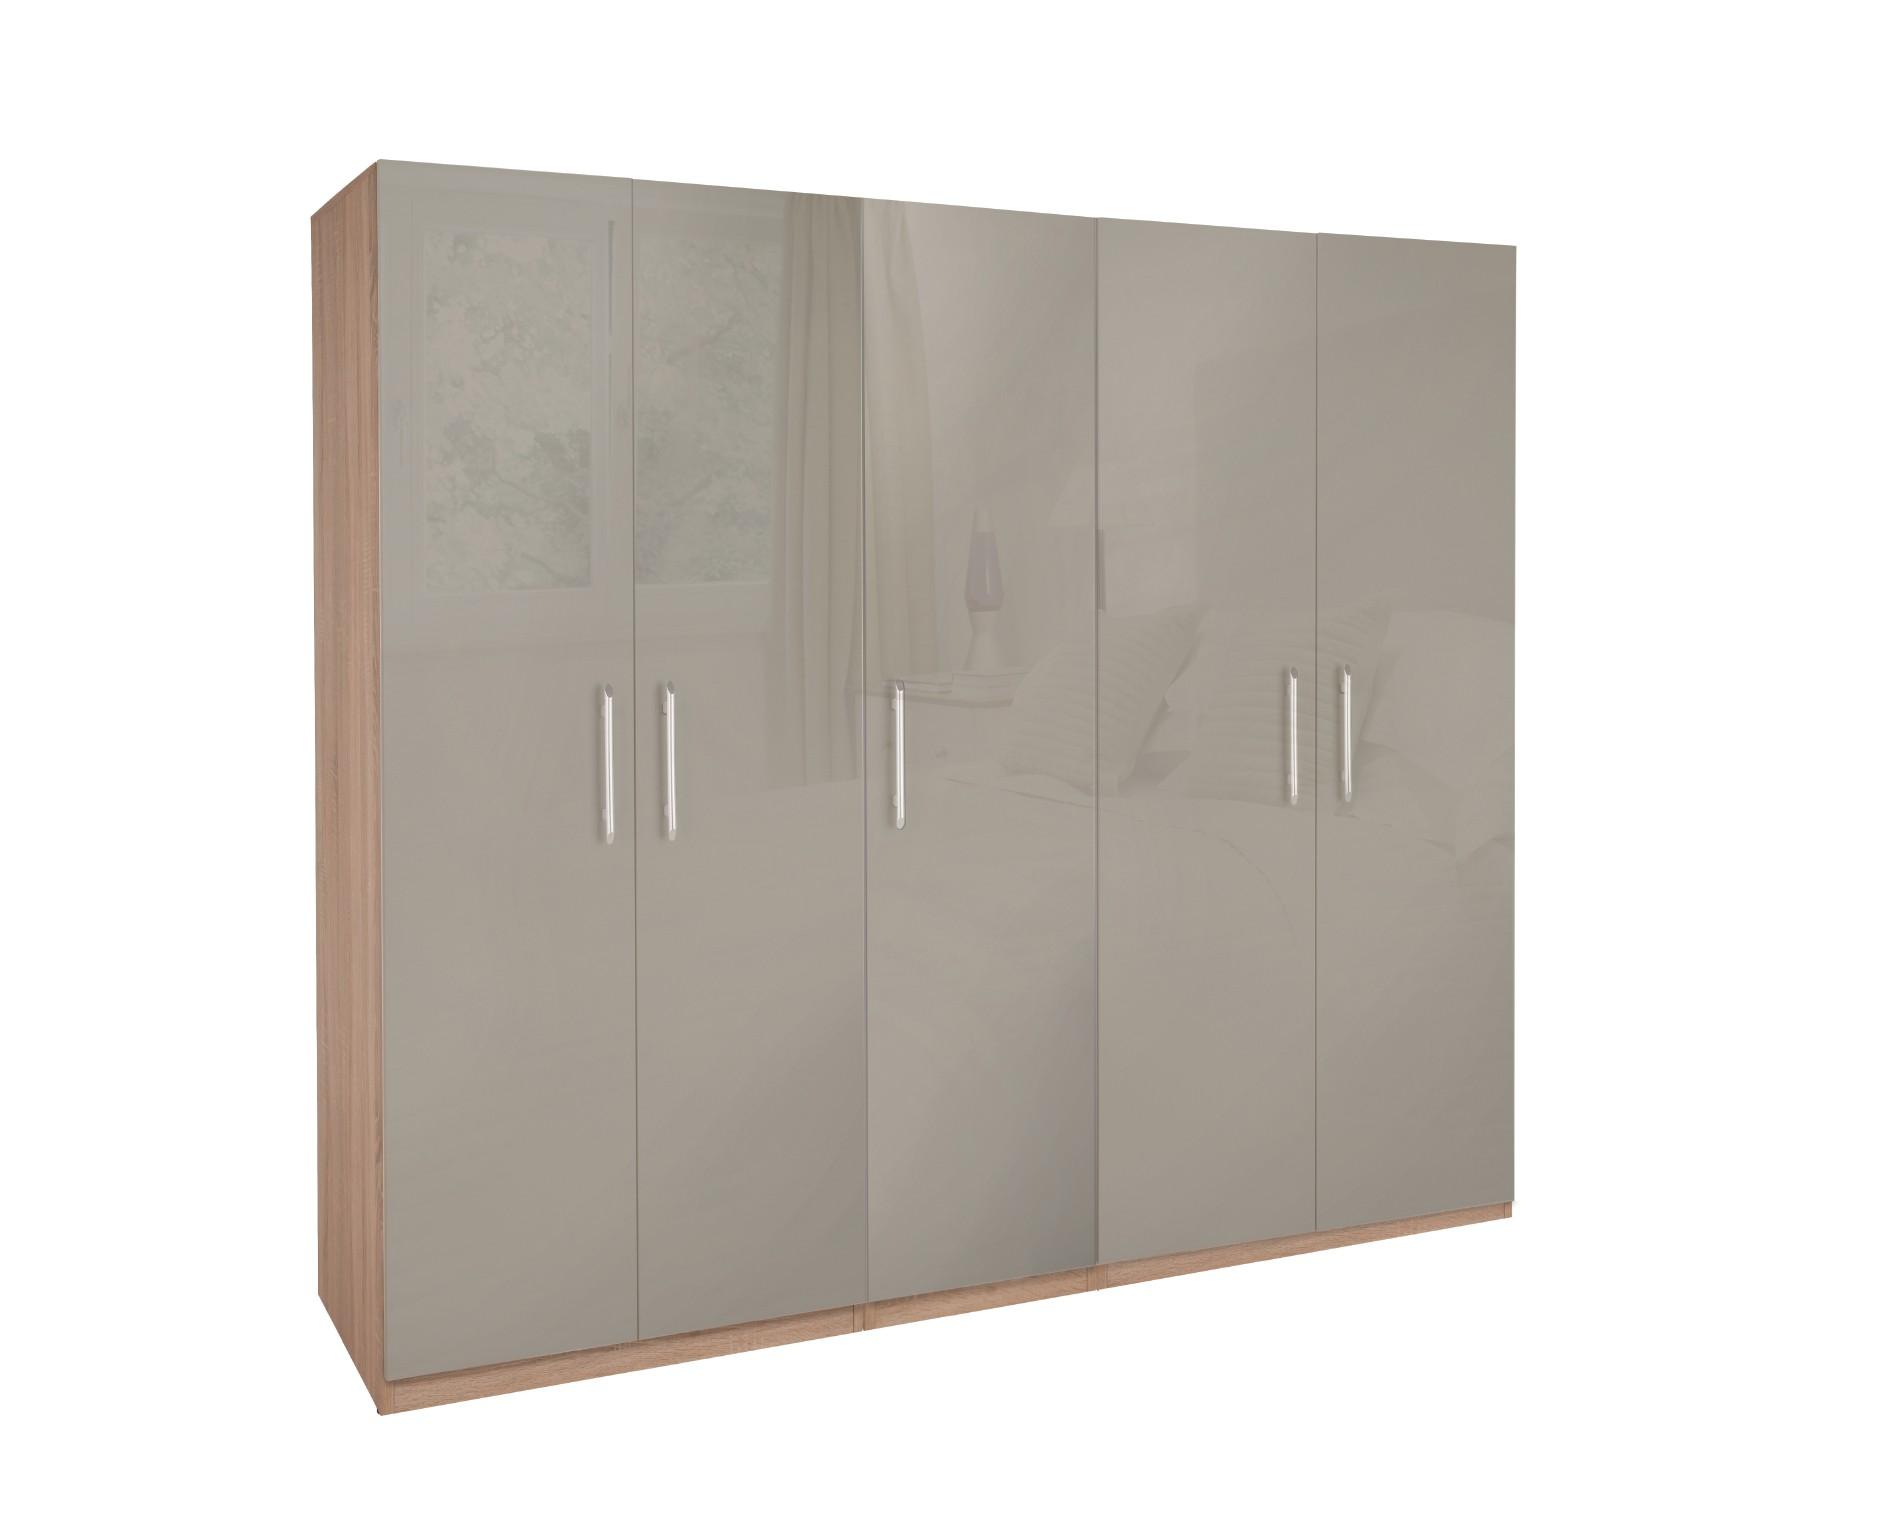 Kensington High Gloss 5 Door Wardrobe